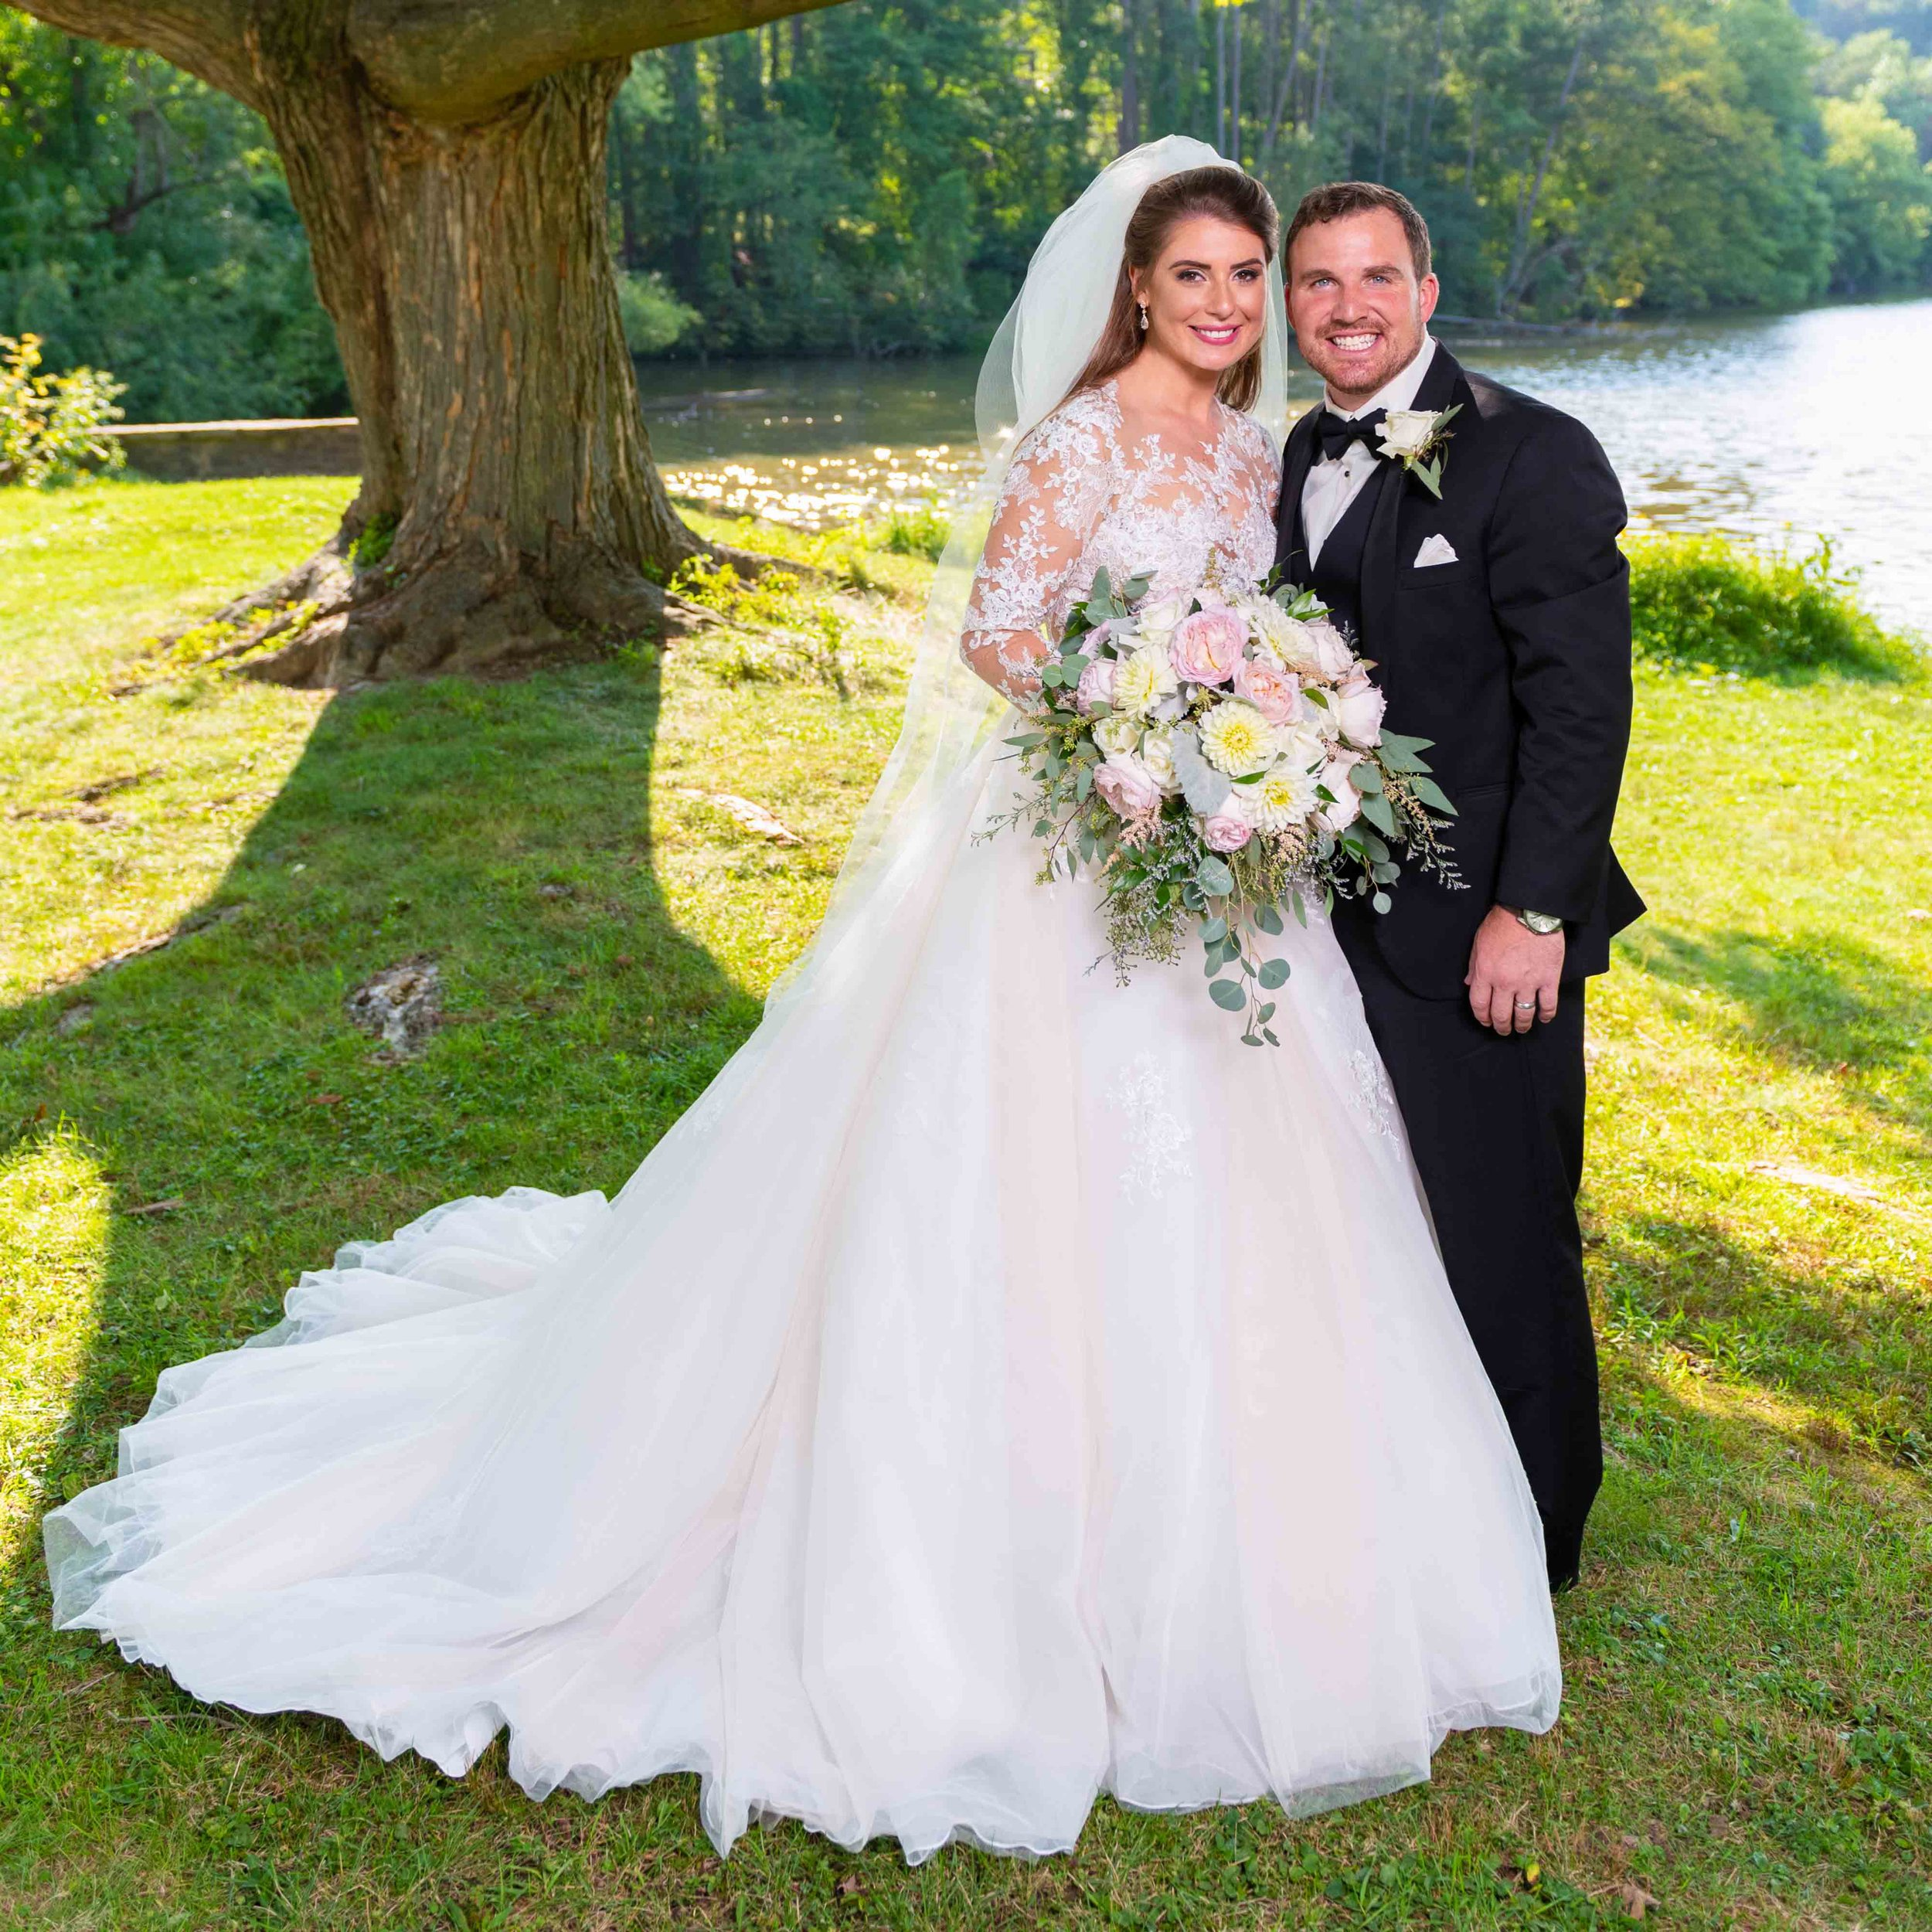 Bride-and-groom-North-Park-Lake-Portrait.jpg